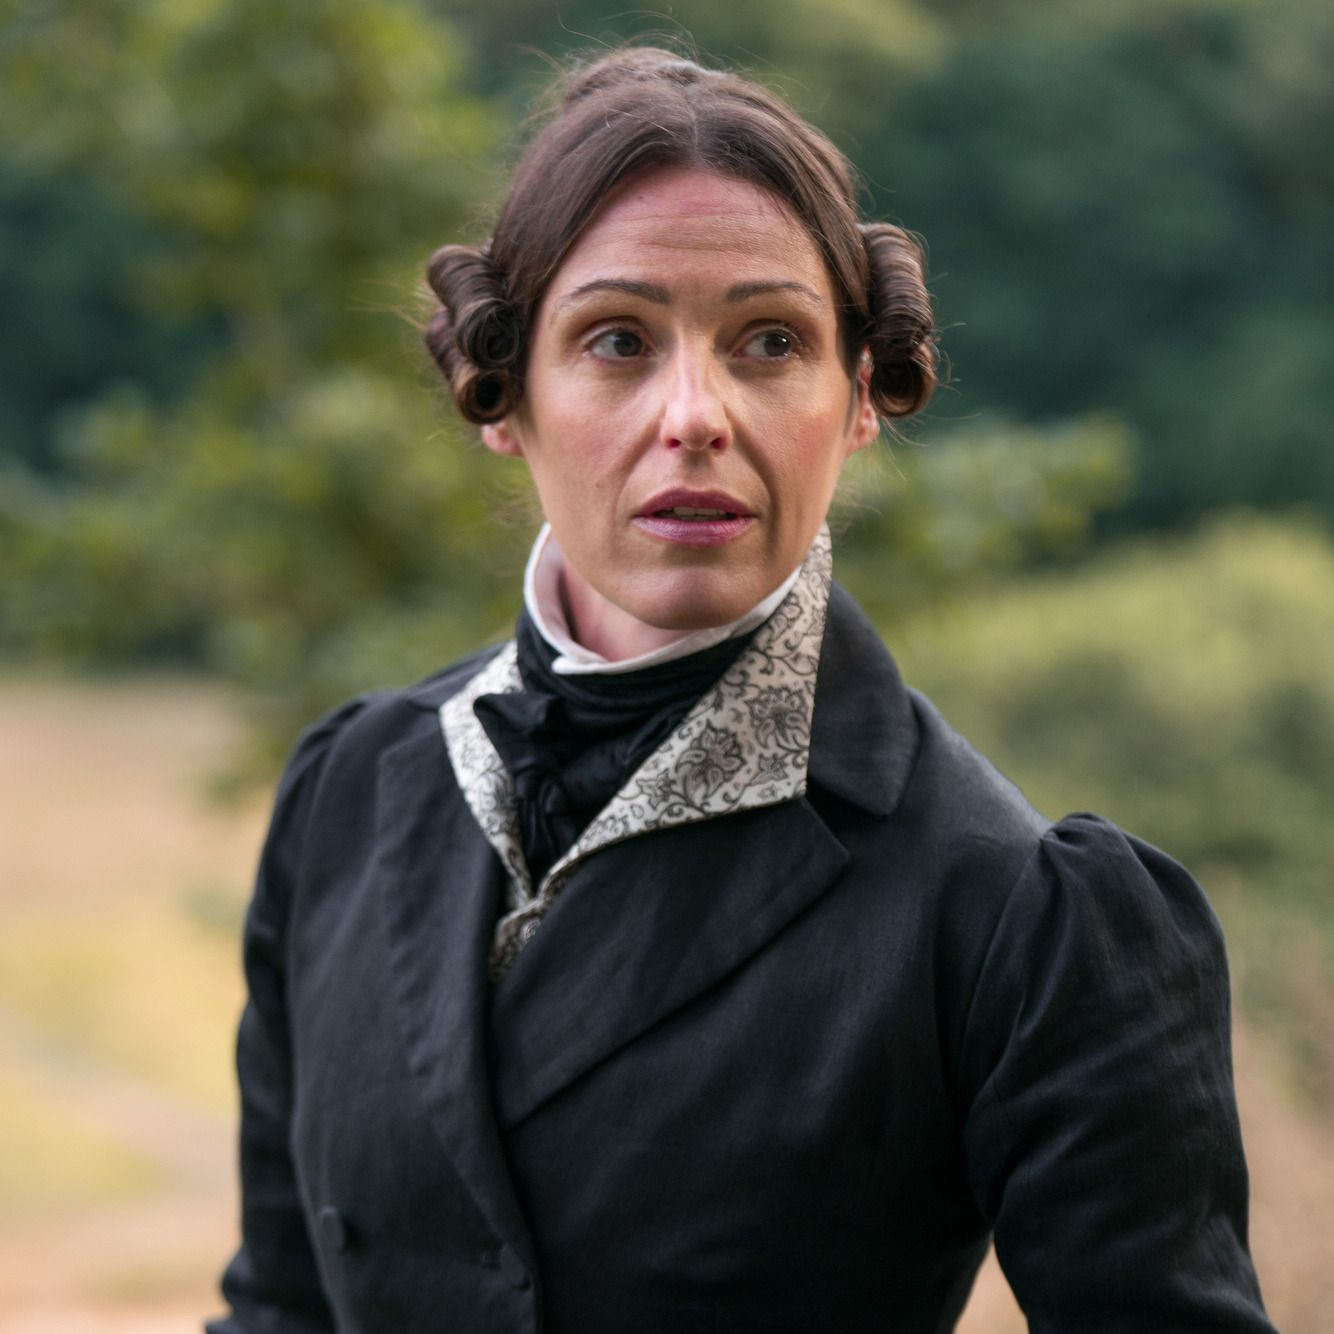 New Suranne Jones-led BBC drama Gentleman Jack receives overwhelmingly positive response from viewers